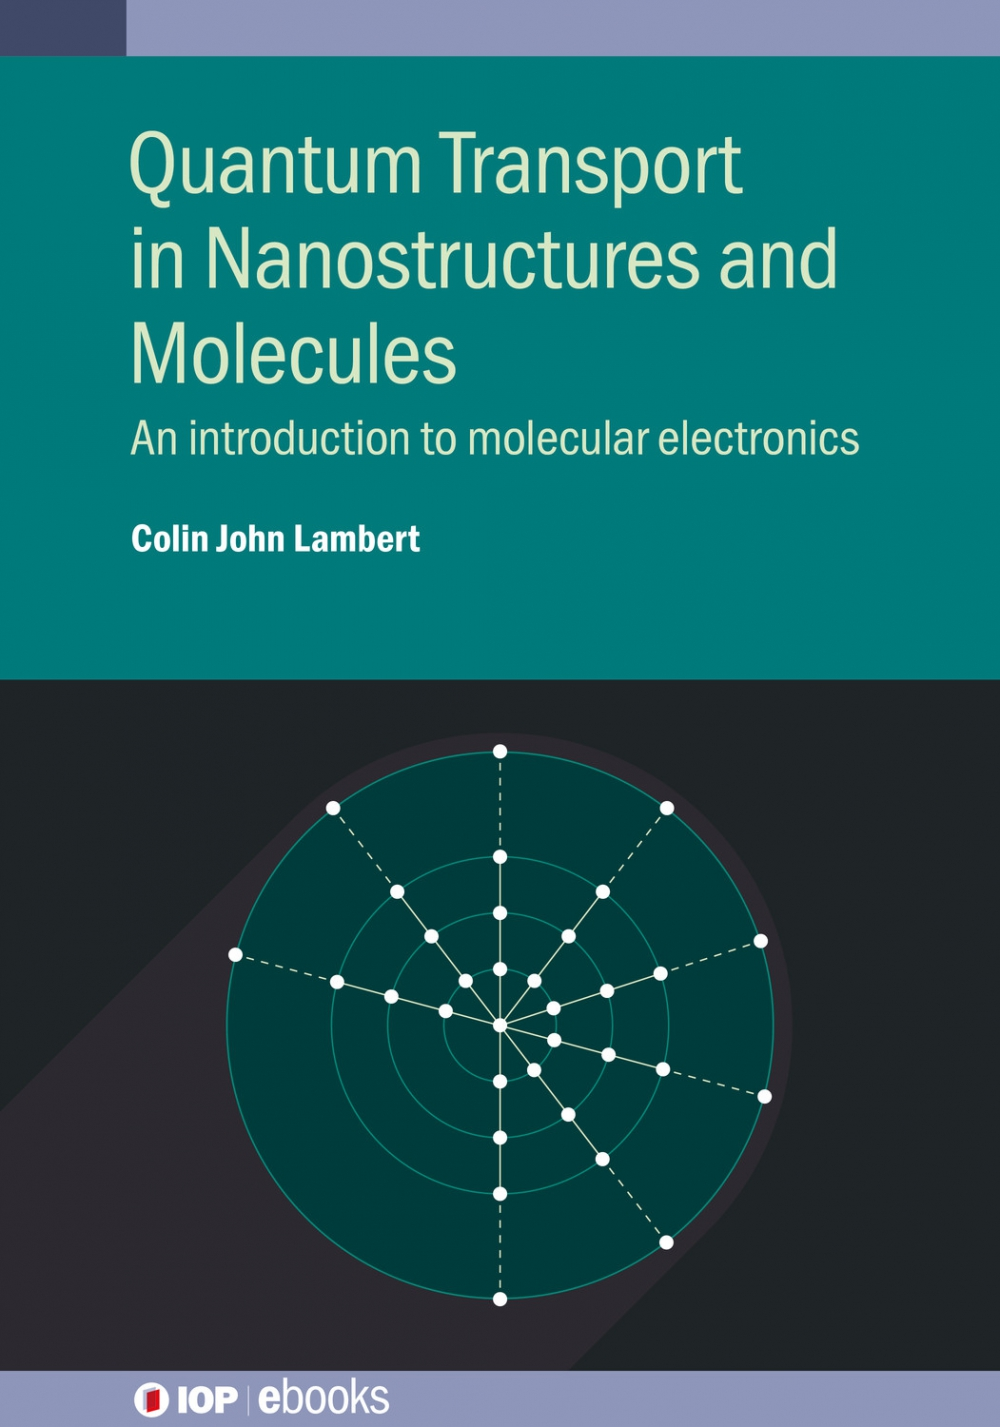 Jacket image for Quantum Transport in Nanostructures and Molecules